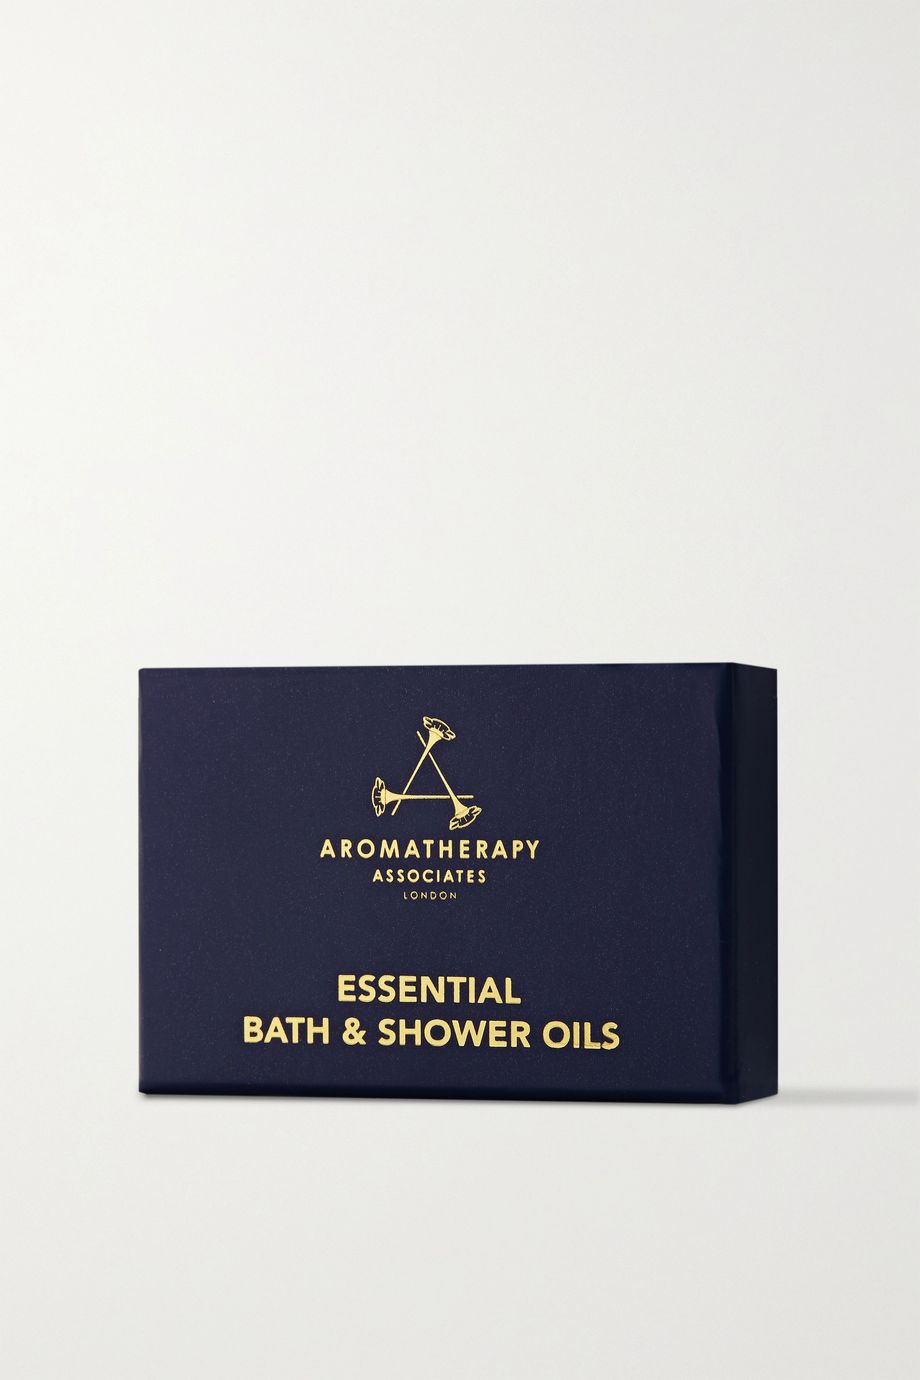 AROMATHERAPY ASSOCIATES Essential Bath & Shower Oils, 3 x 9ml